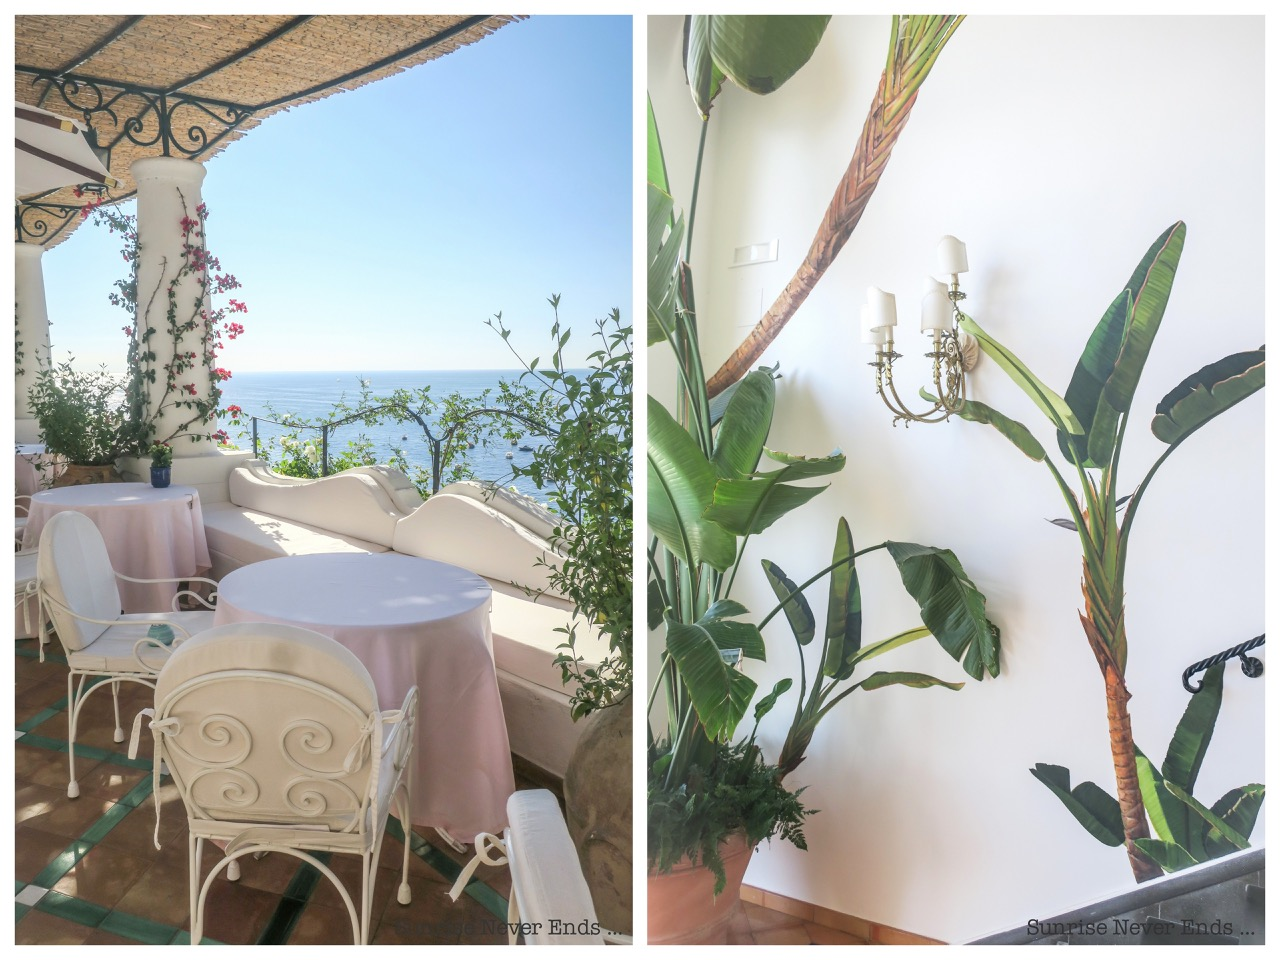 positano,italie,cote amalfitaine,voyage,travel,travel blogger,hotel,luxury hotel,hotel blogger,le sirénuse,breakfast,bon plan,tips,travel guide,palace,alice et fantomette ont the boat,anitalianboattrip